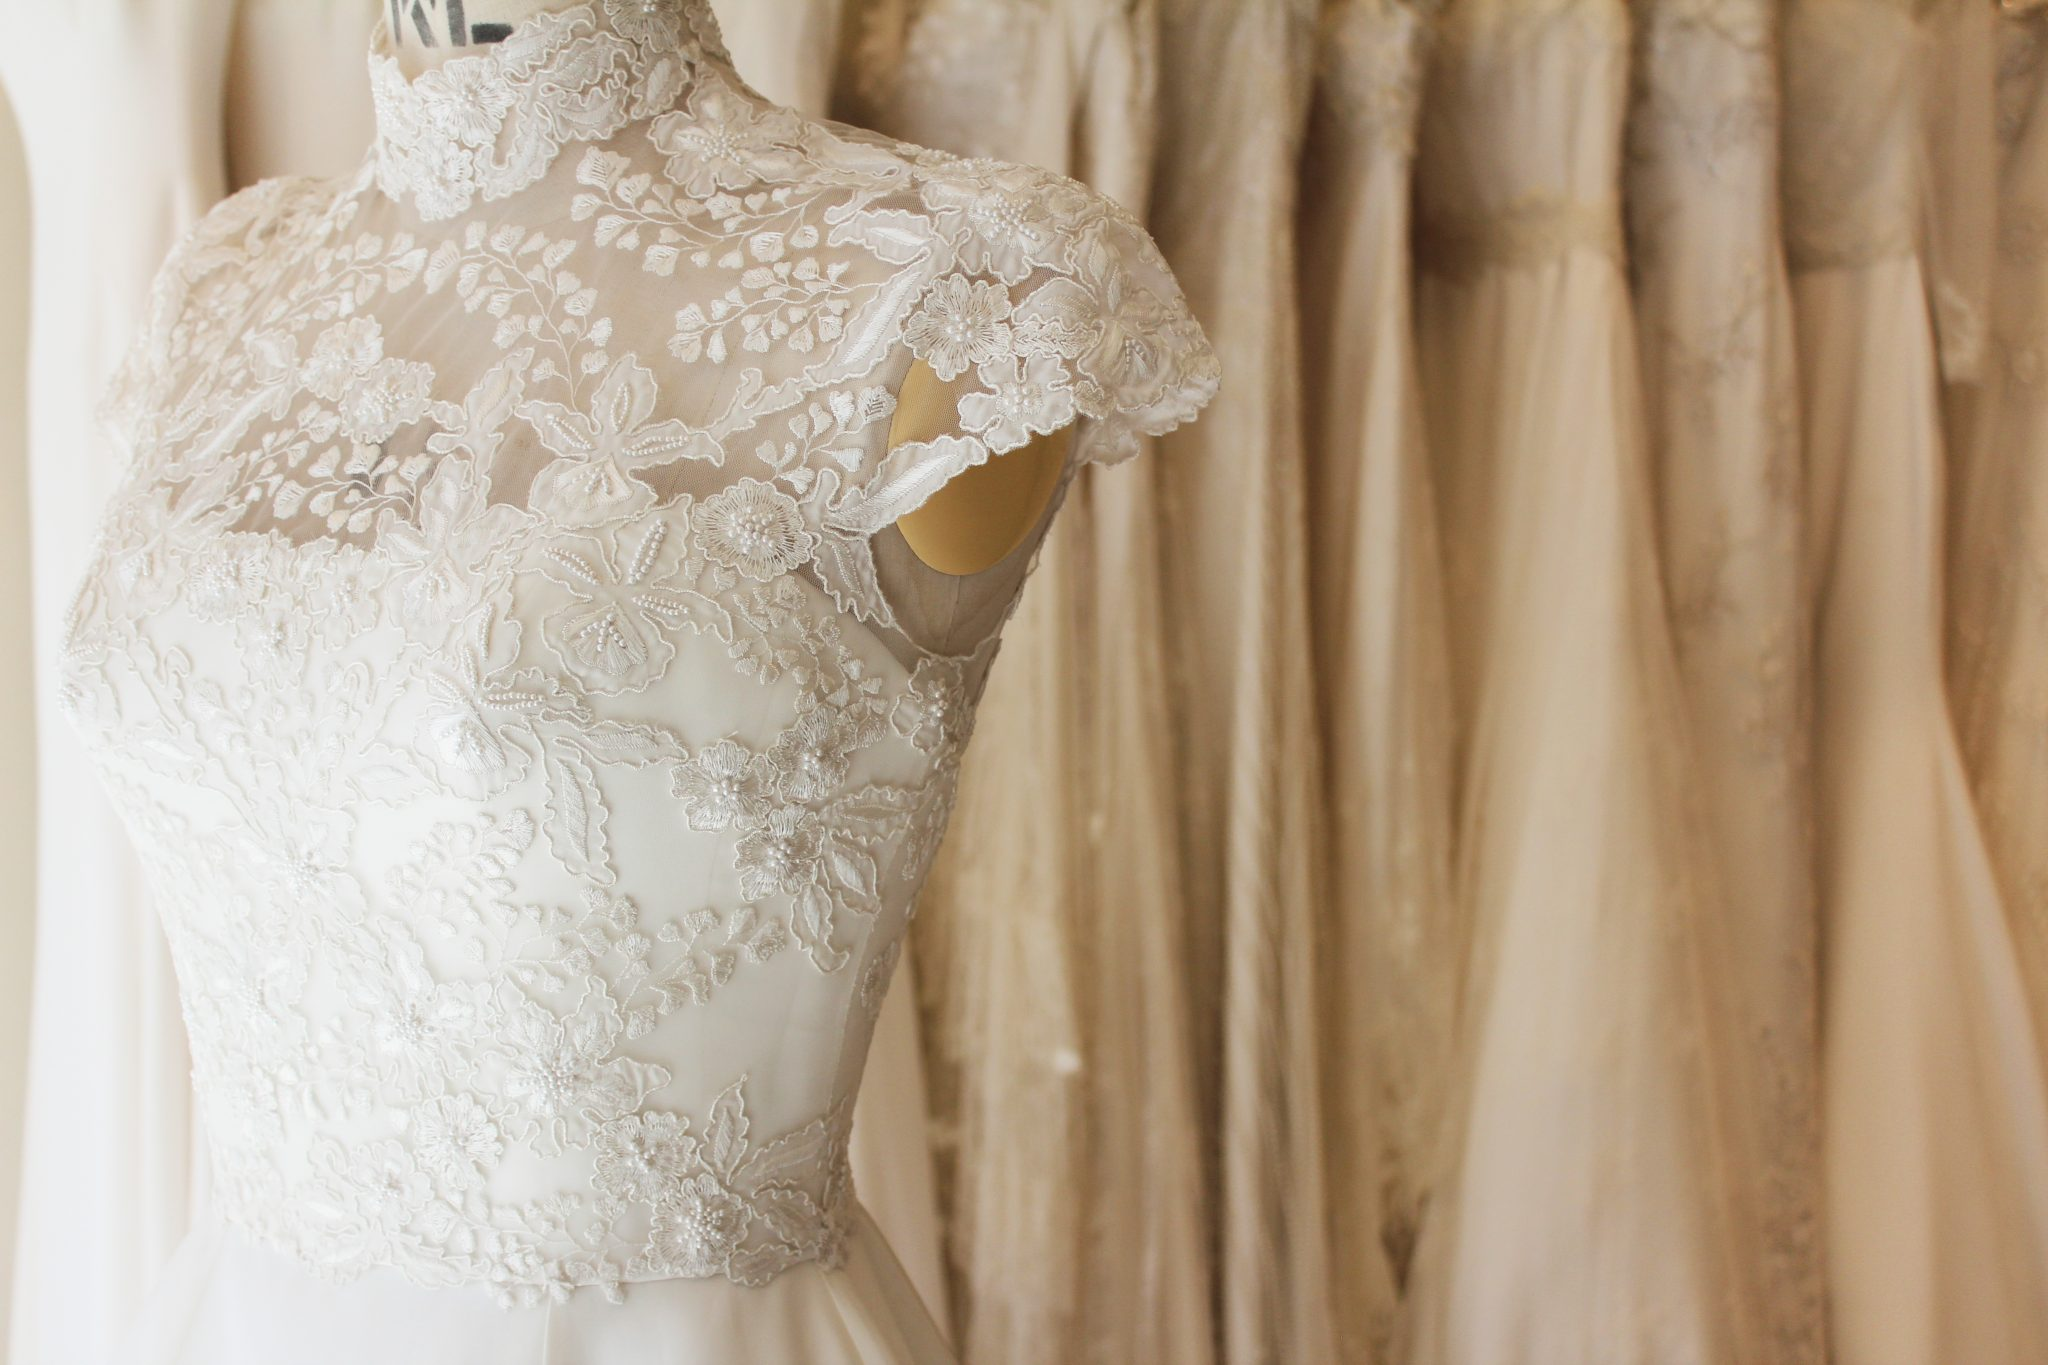 Left side of a Phillipa Lepley high neck wedding dress with embroidery and cap sleeves